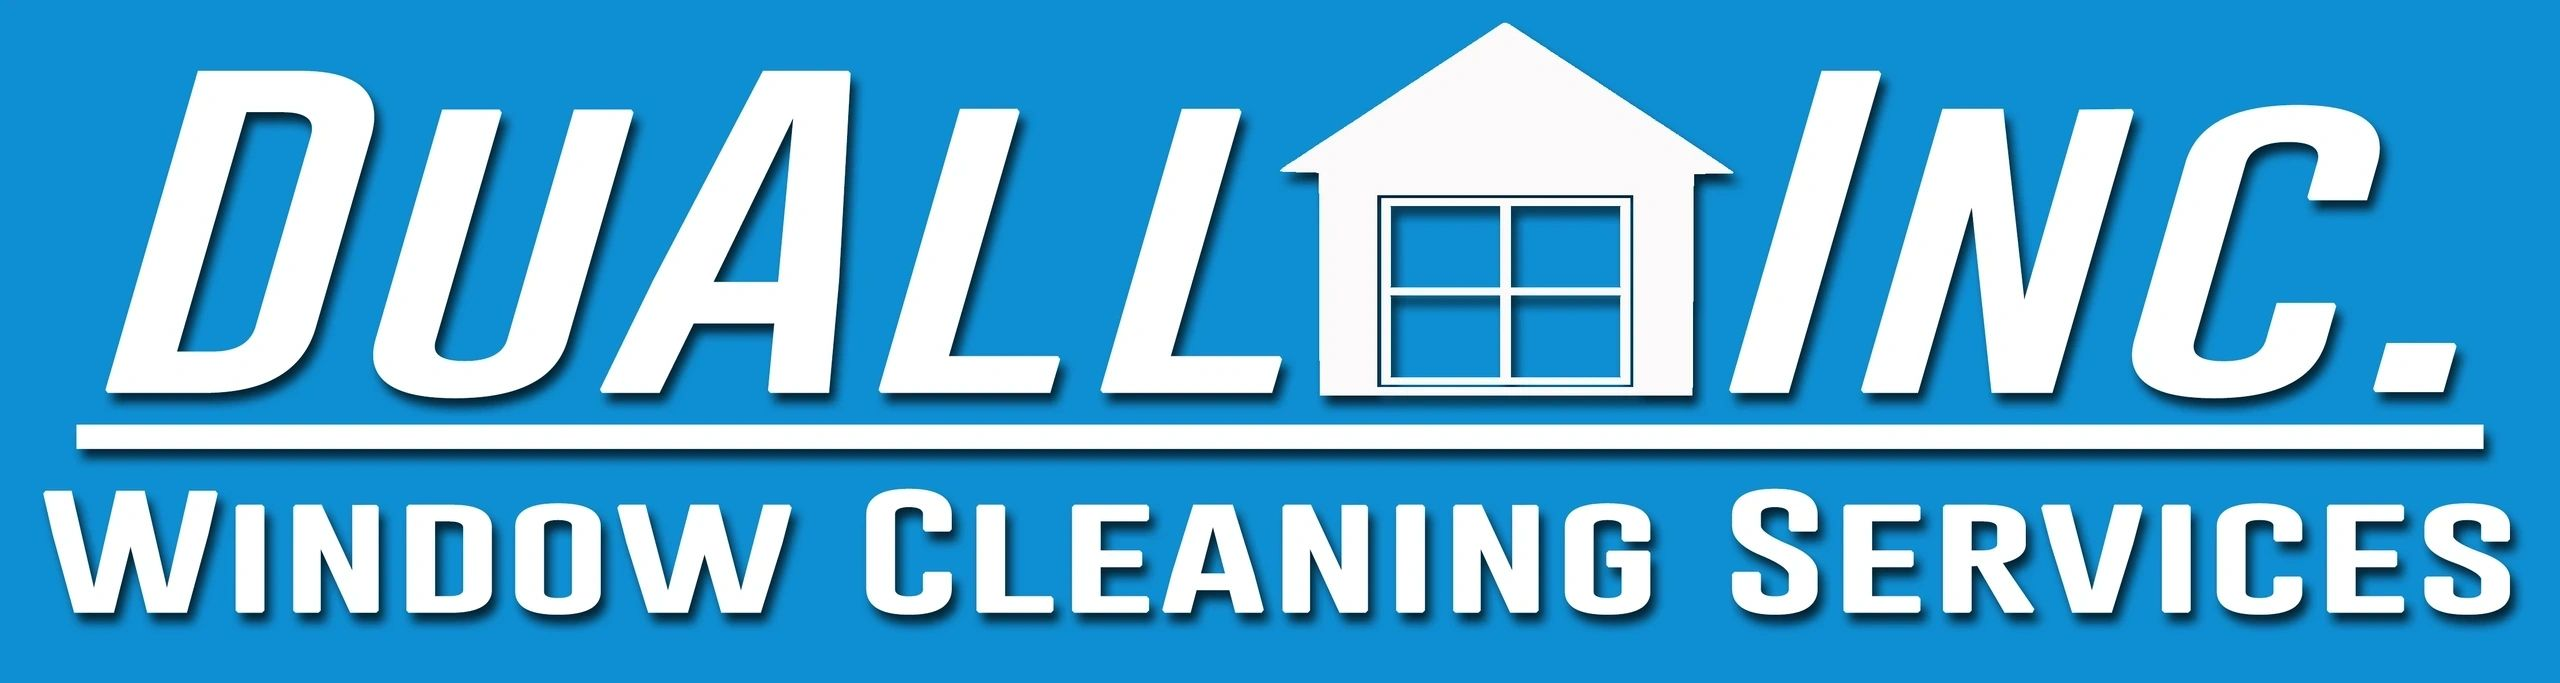 DuAll Window Cleaning logo